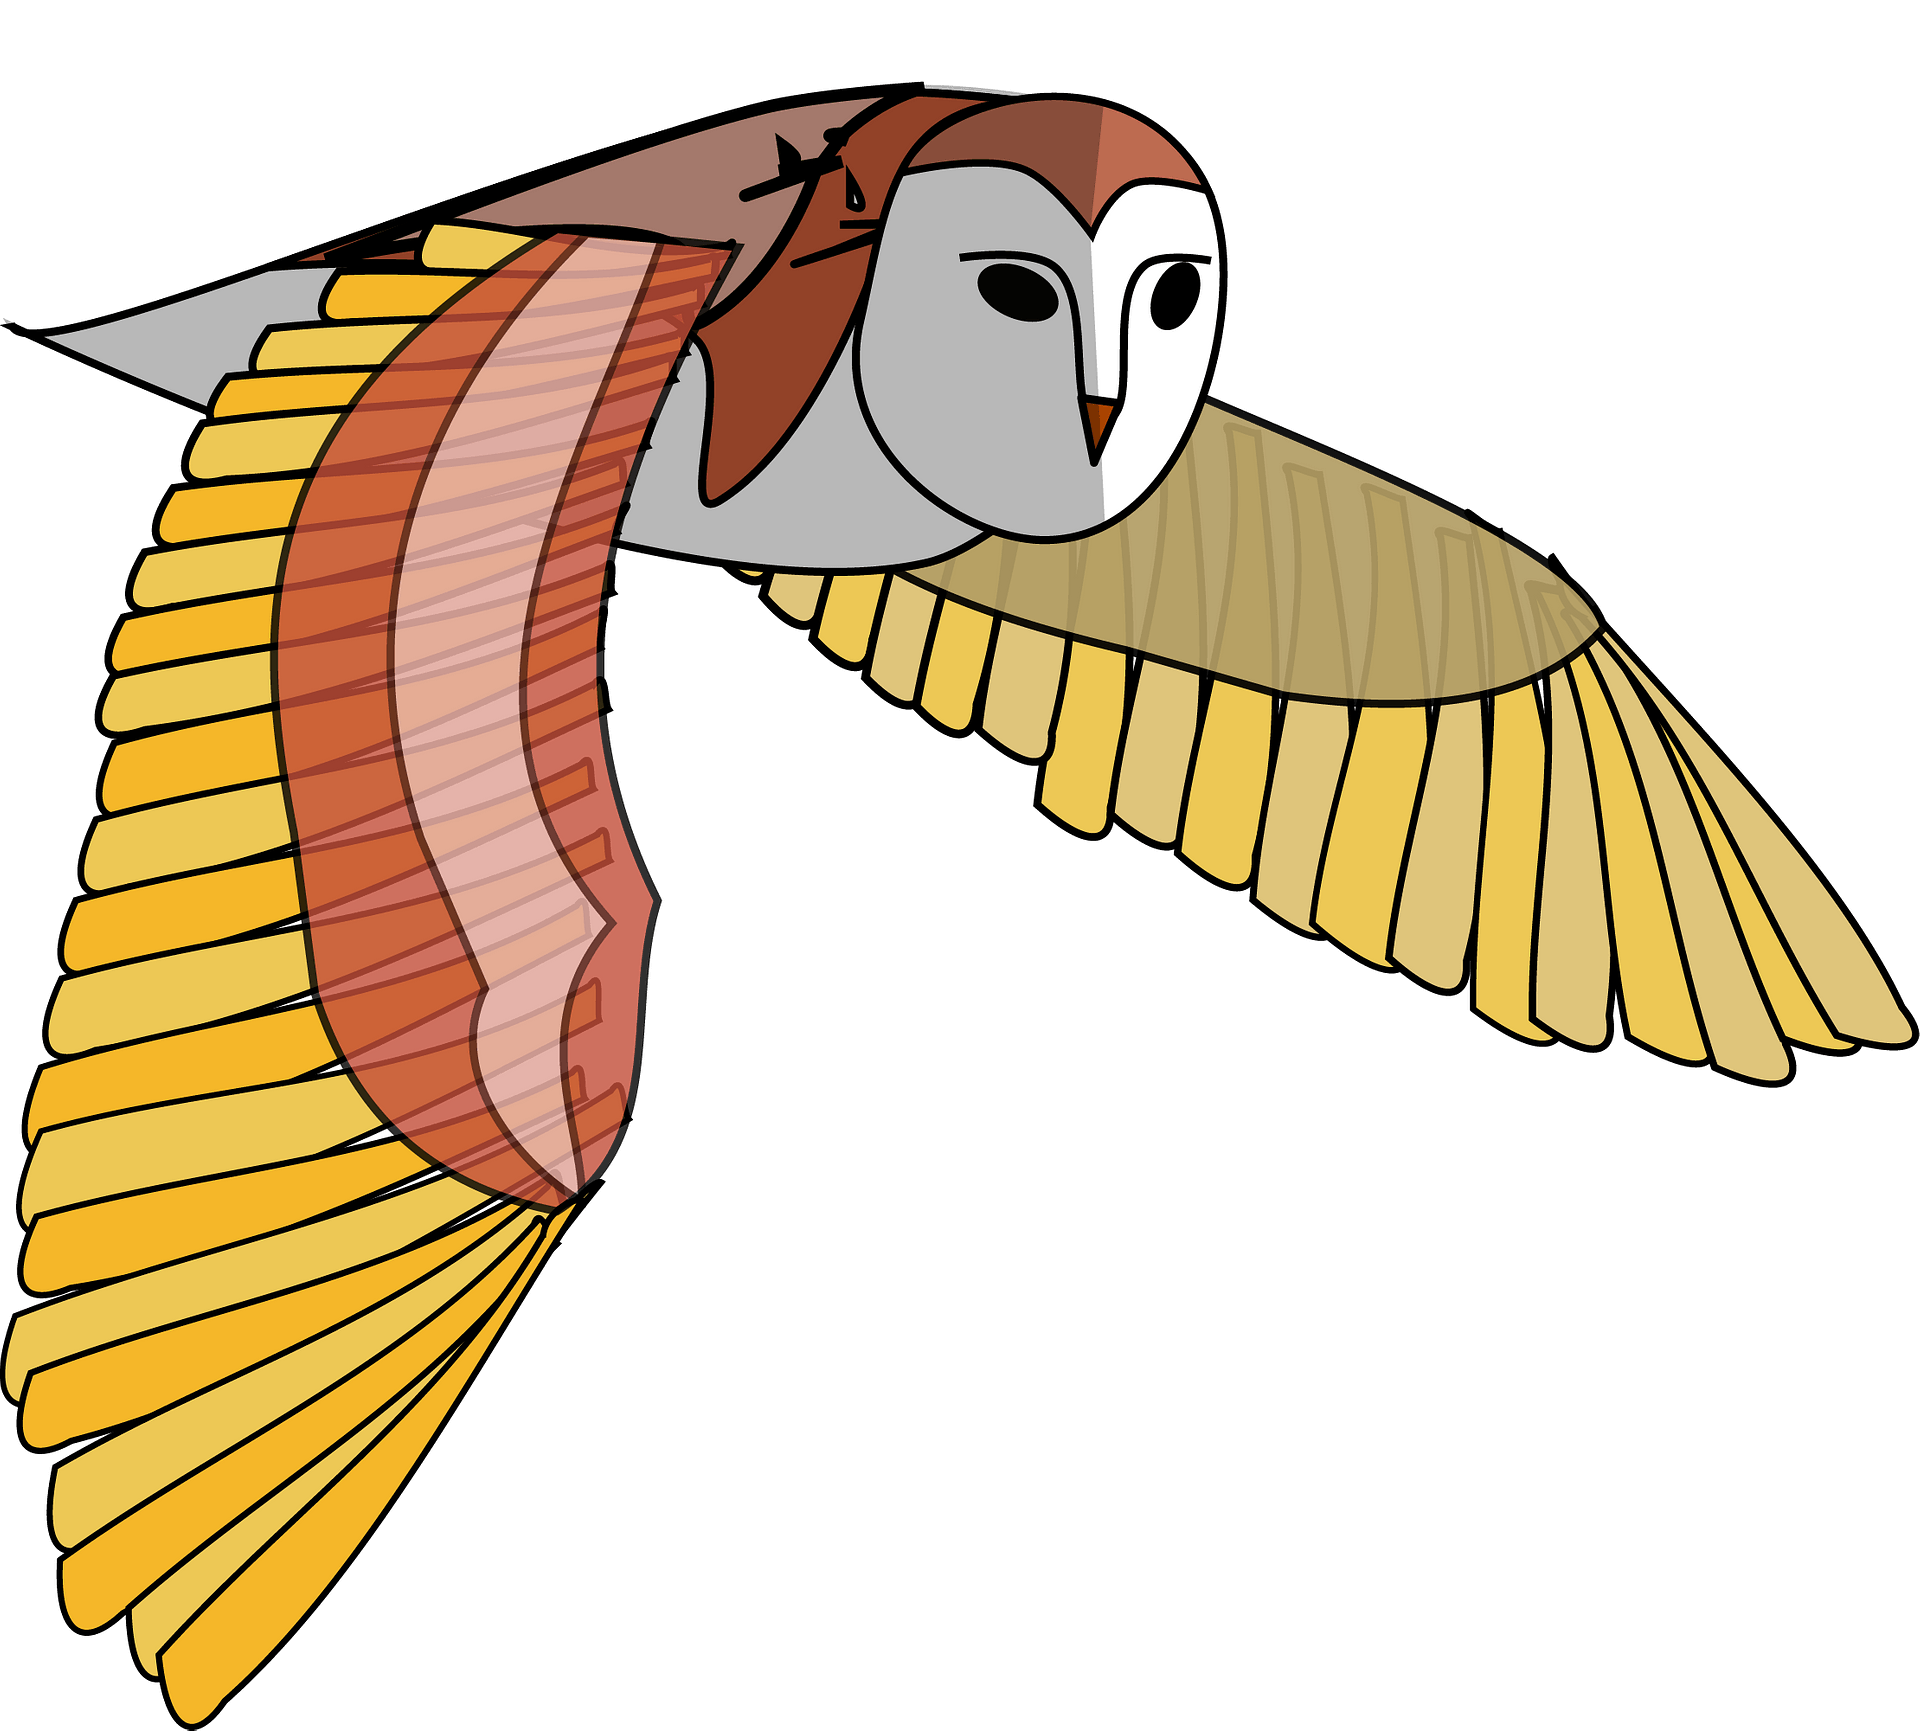 Illustration Of Brown Flying Owl Royalty Free Cliparts, Vectors, And Stock  Illustration. Image 13493245.